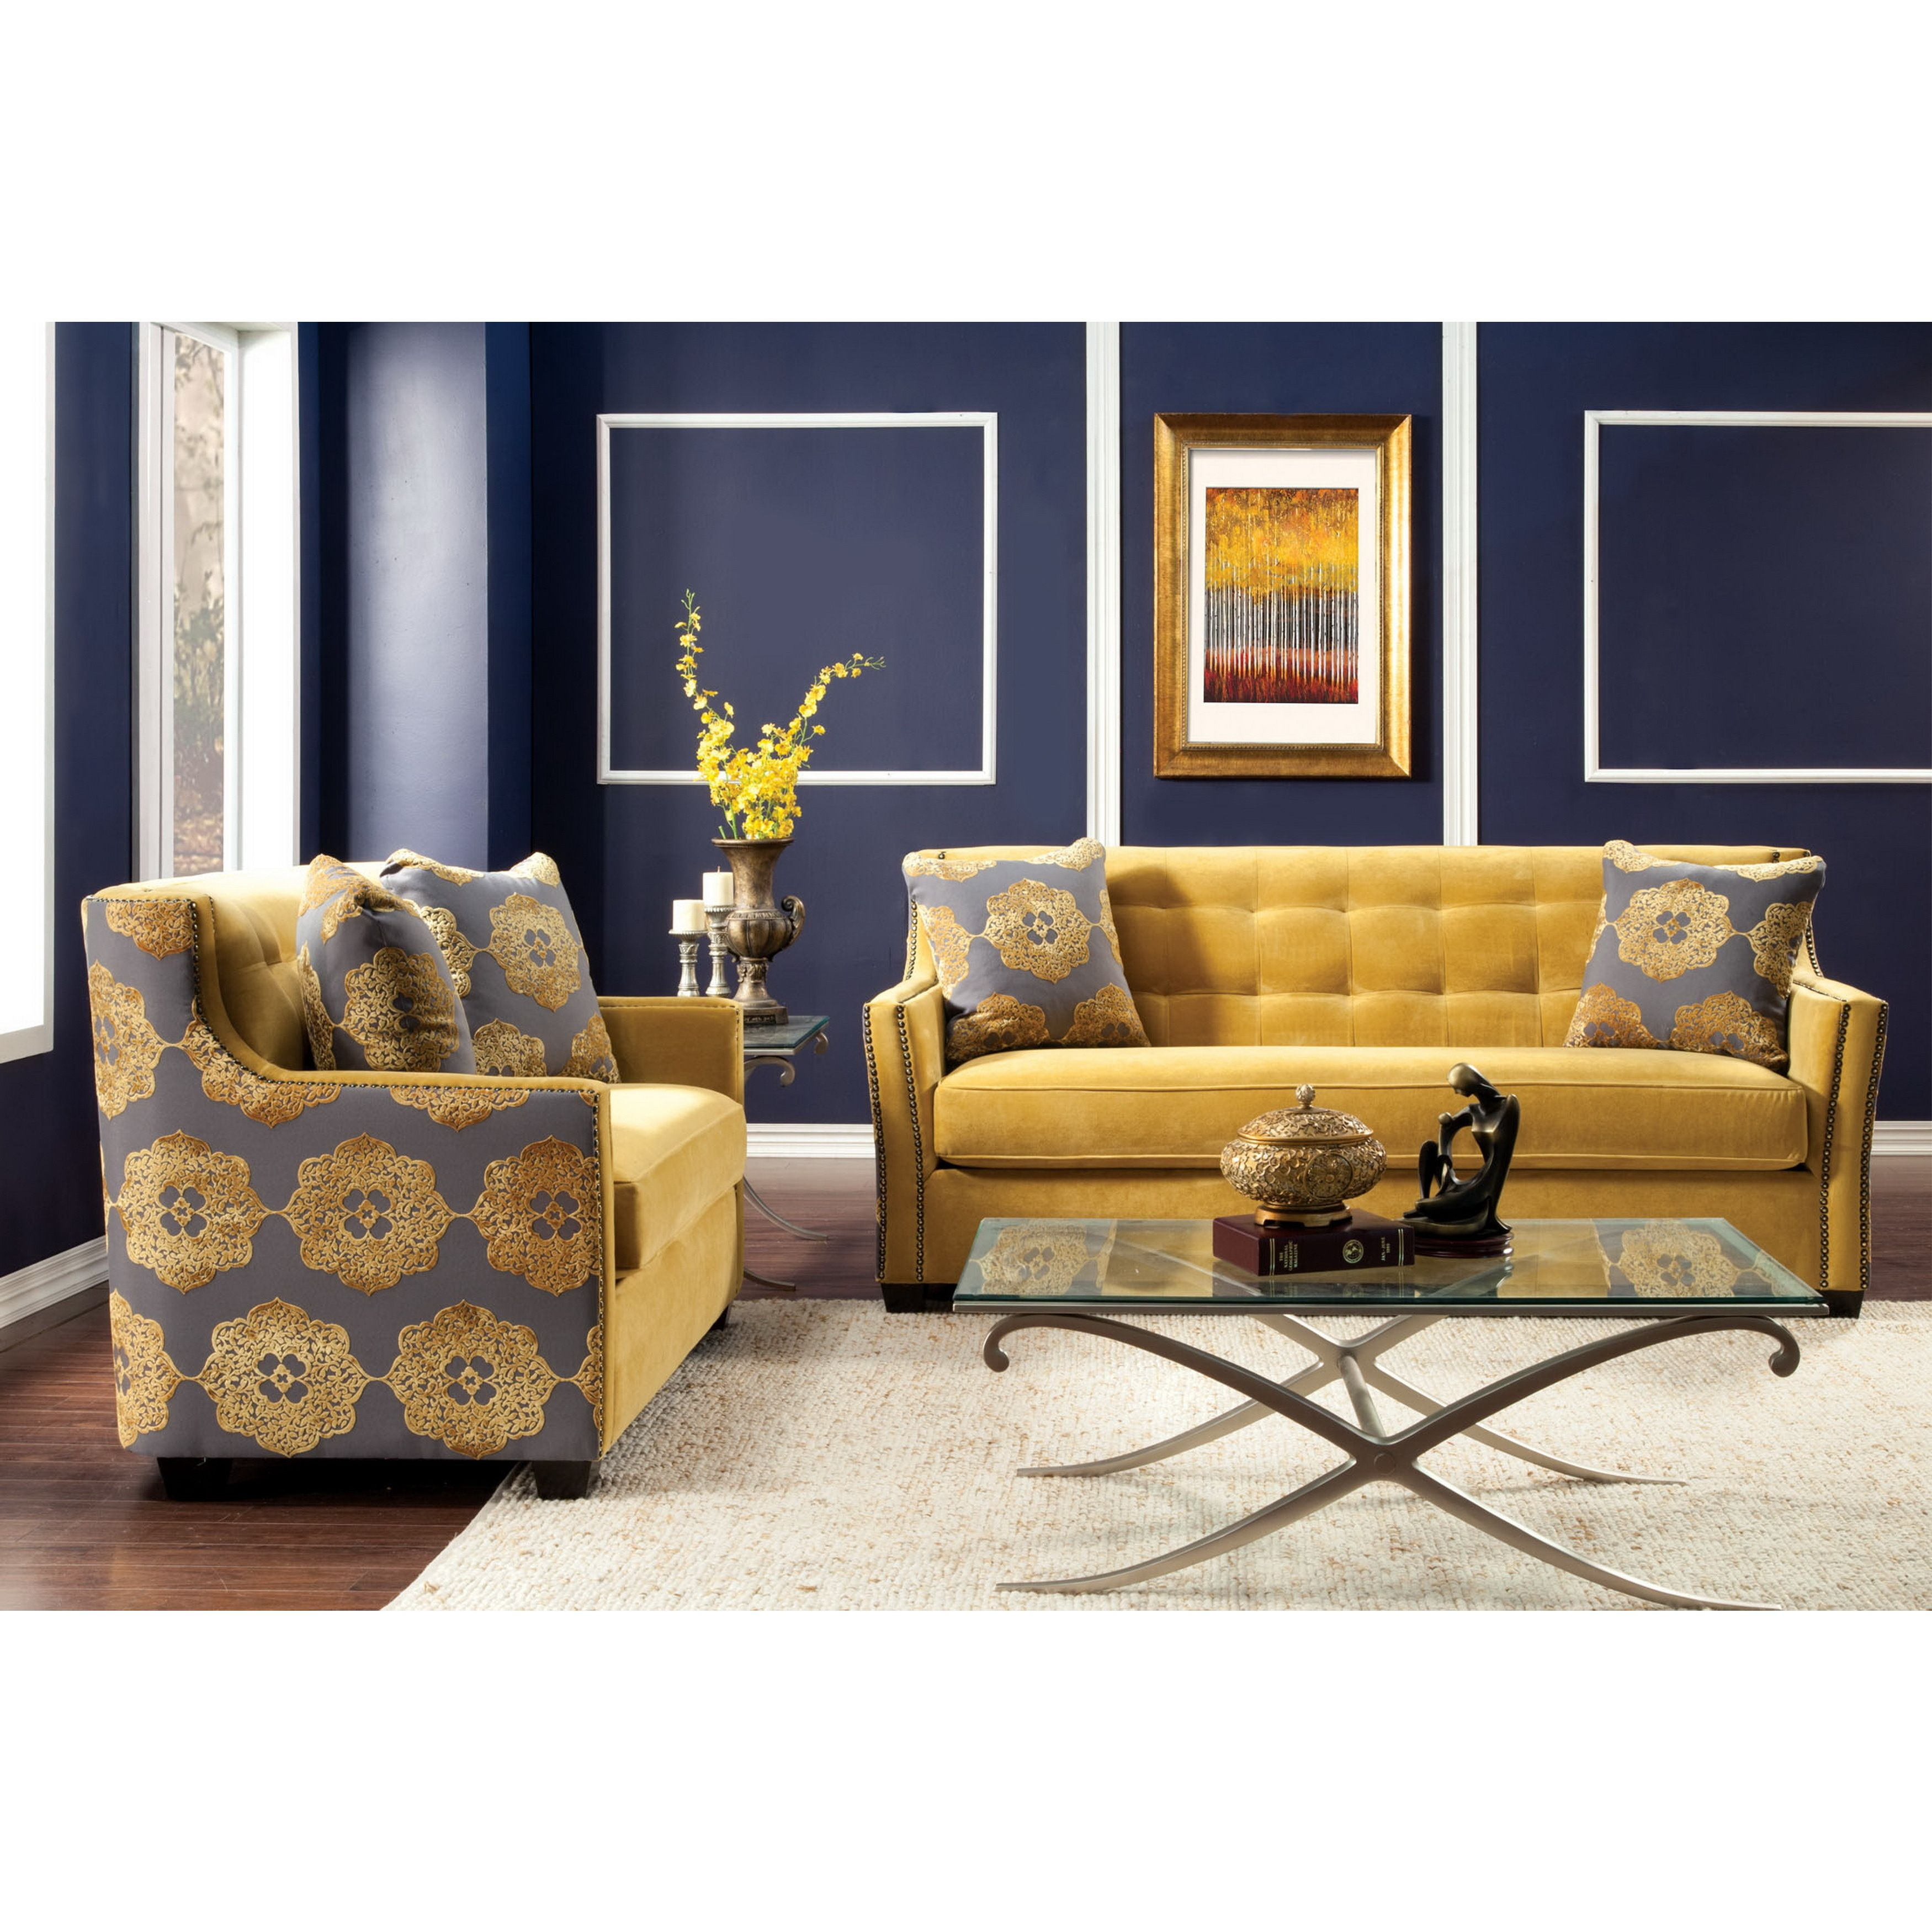 Add luxurious enhancement right in your living decor, the Fedrix sofa set  offers elegant tufted and nailhead accents. Each piece is upholstered in  soft ...